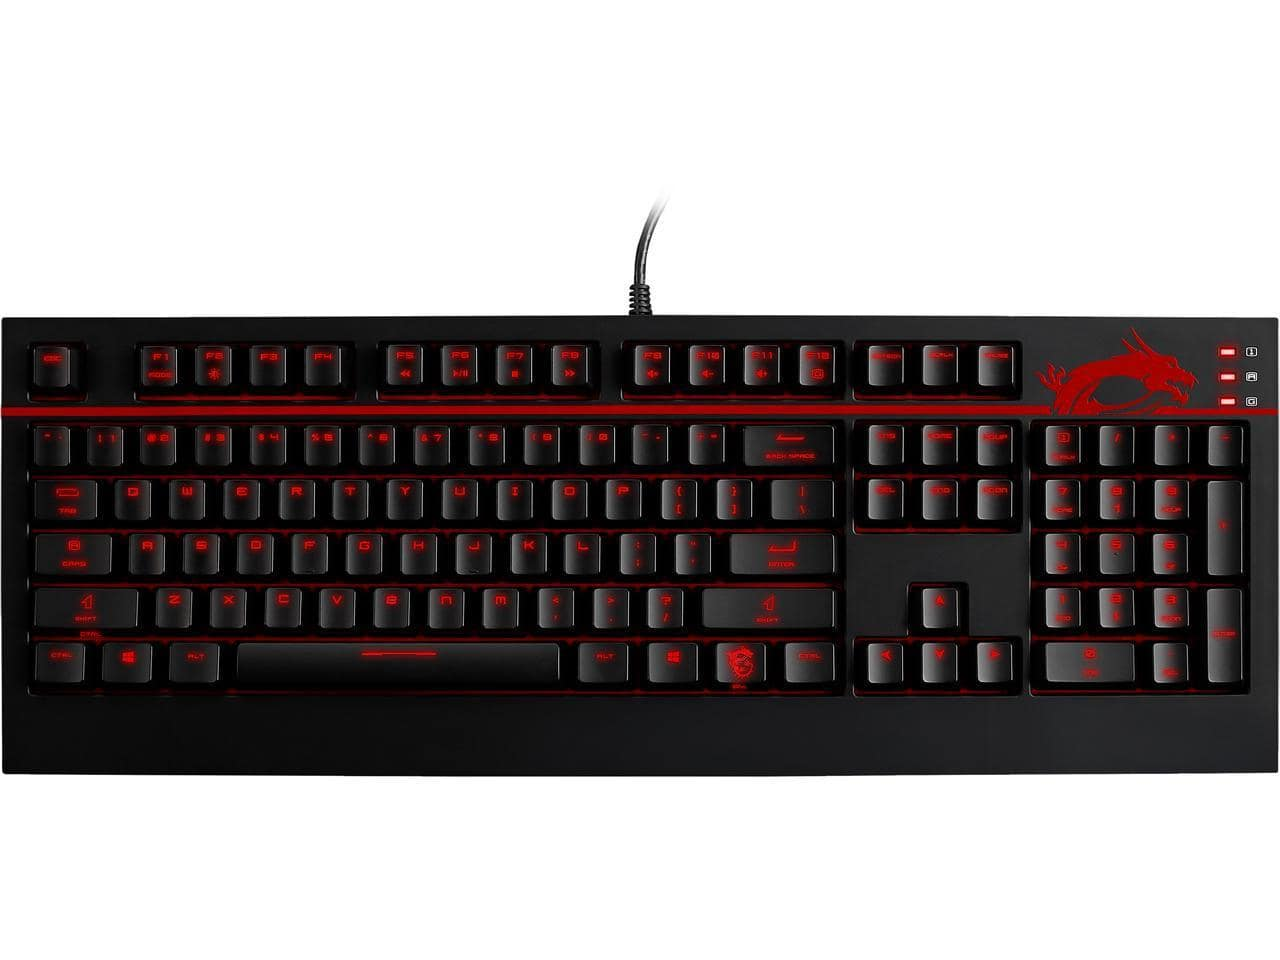 MSI GK-701 Red LED Mechanical Gaming Keyboard with Cherry MX Brown Switches for $42.99 AR & More + Free Ship @ Newegg